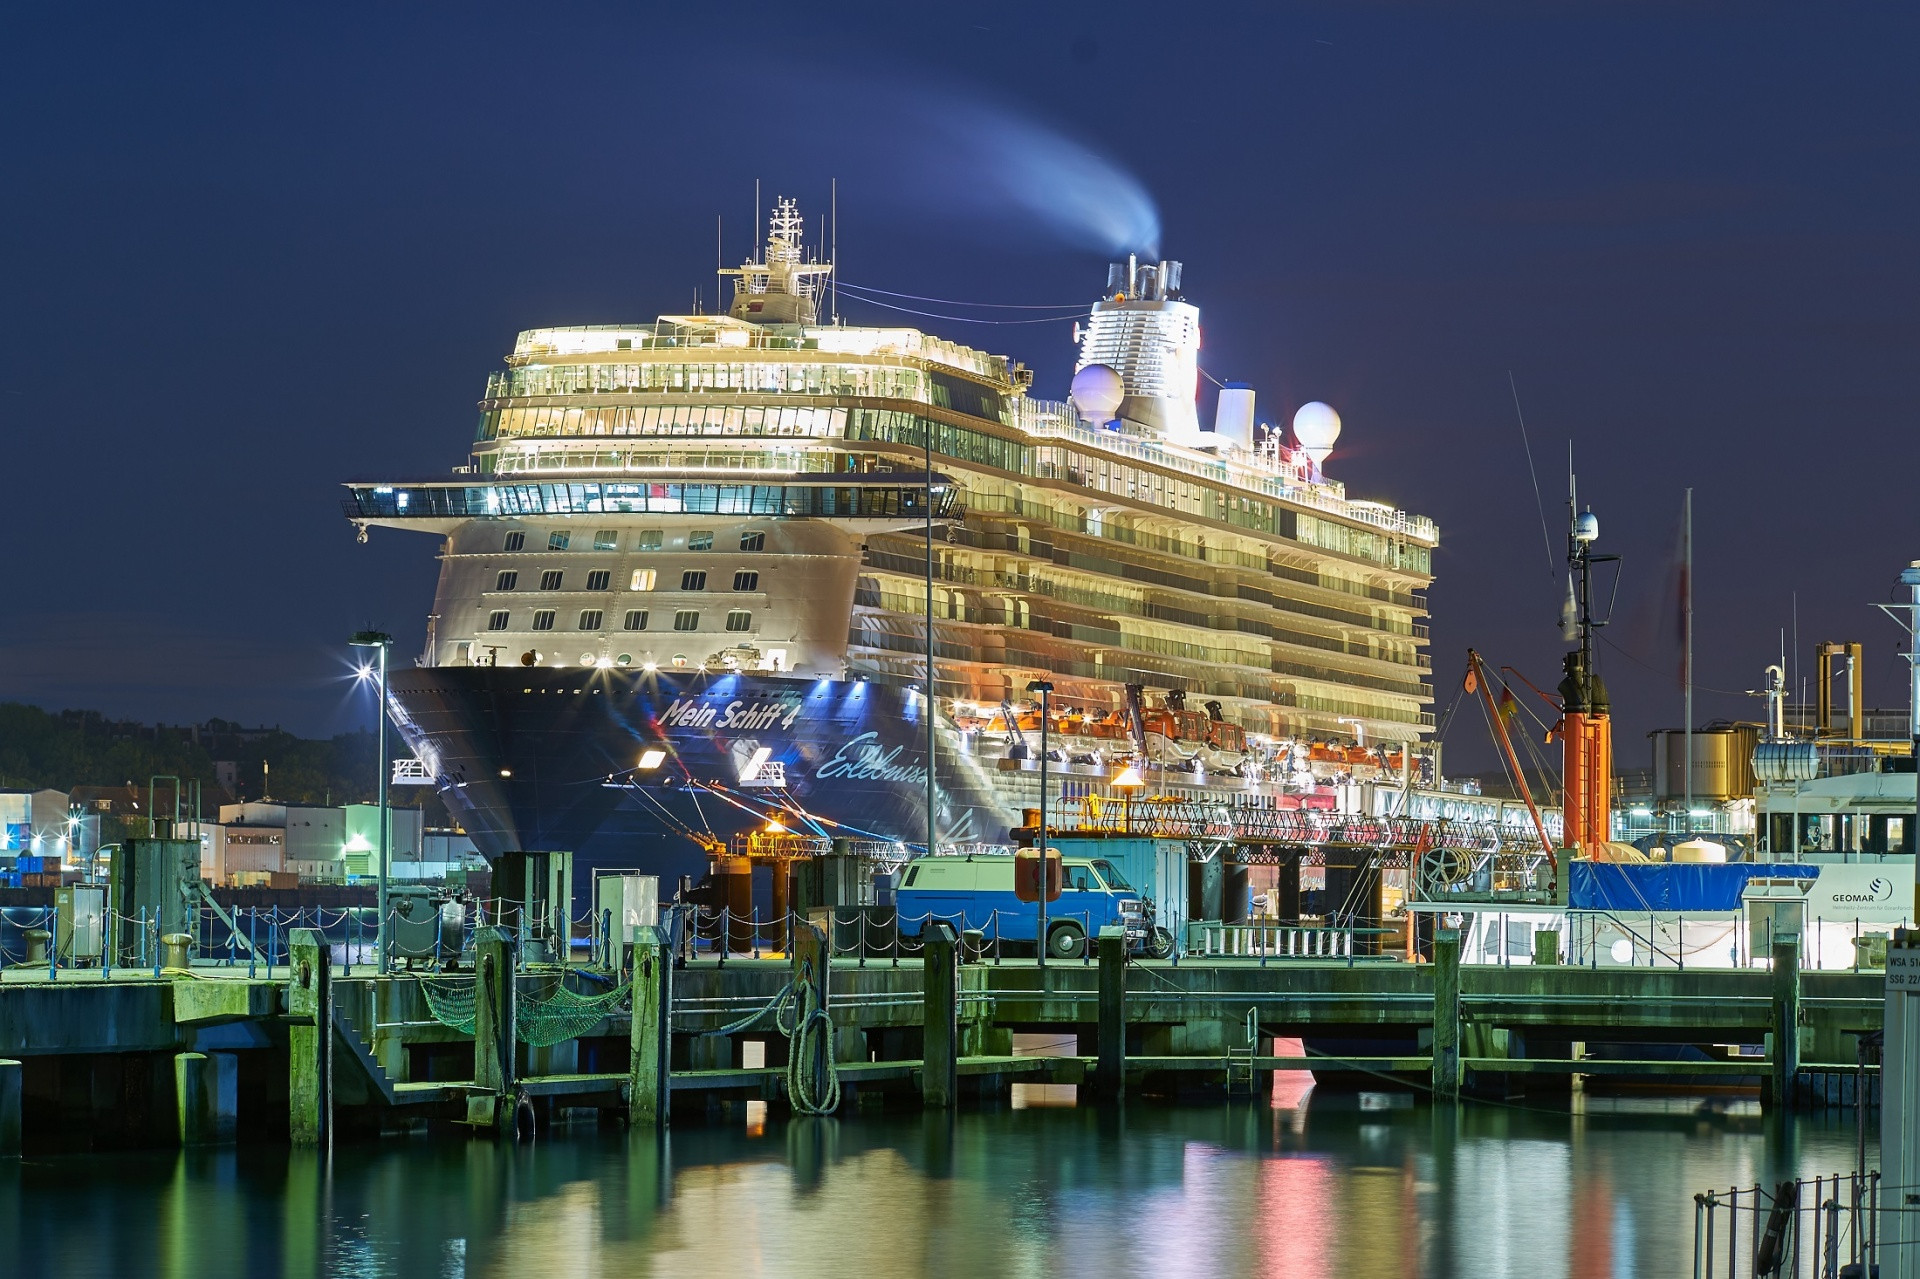 Airport ↔ Cruise Ship Ports